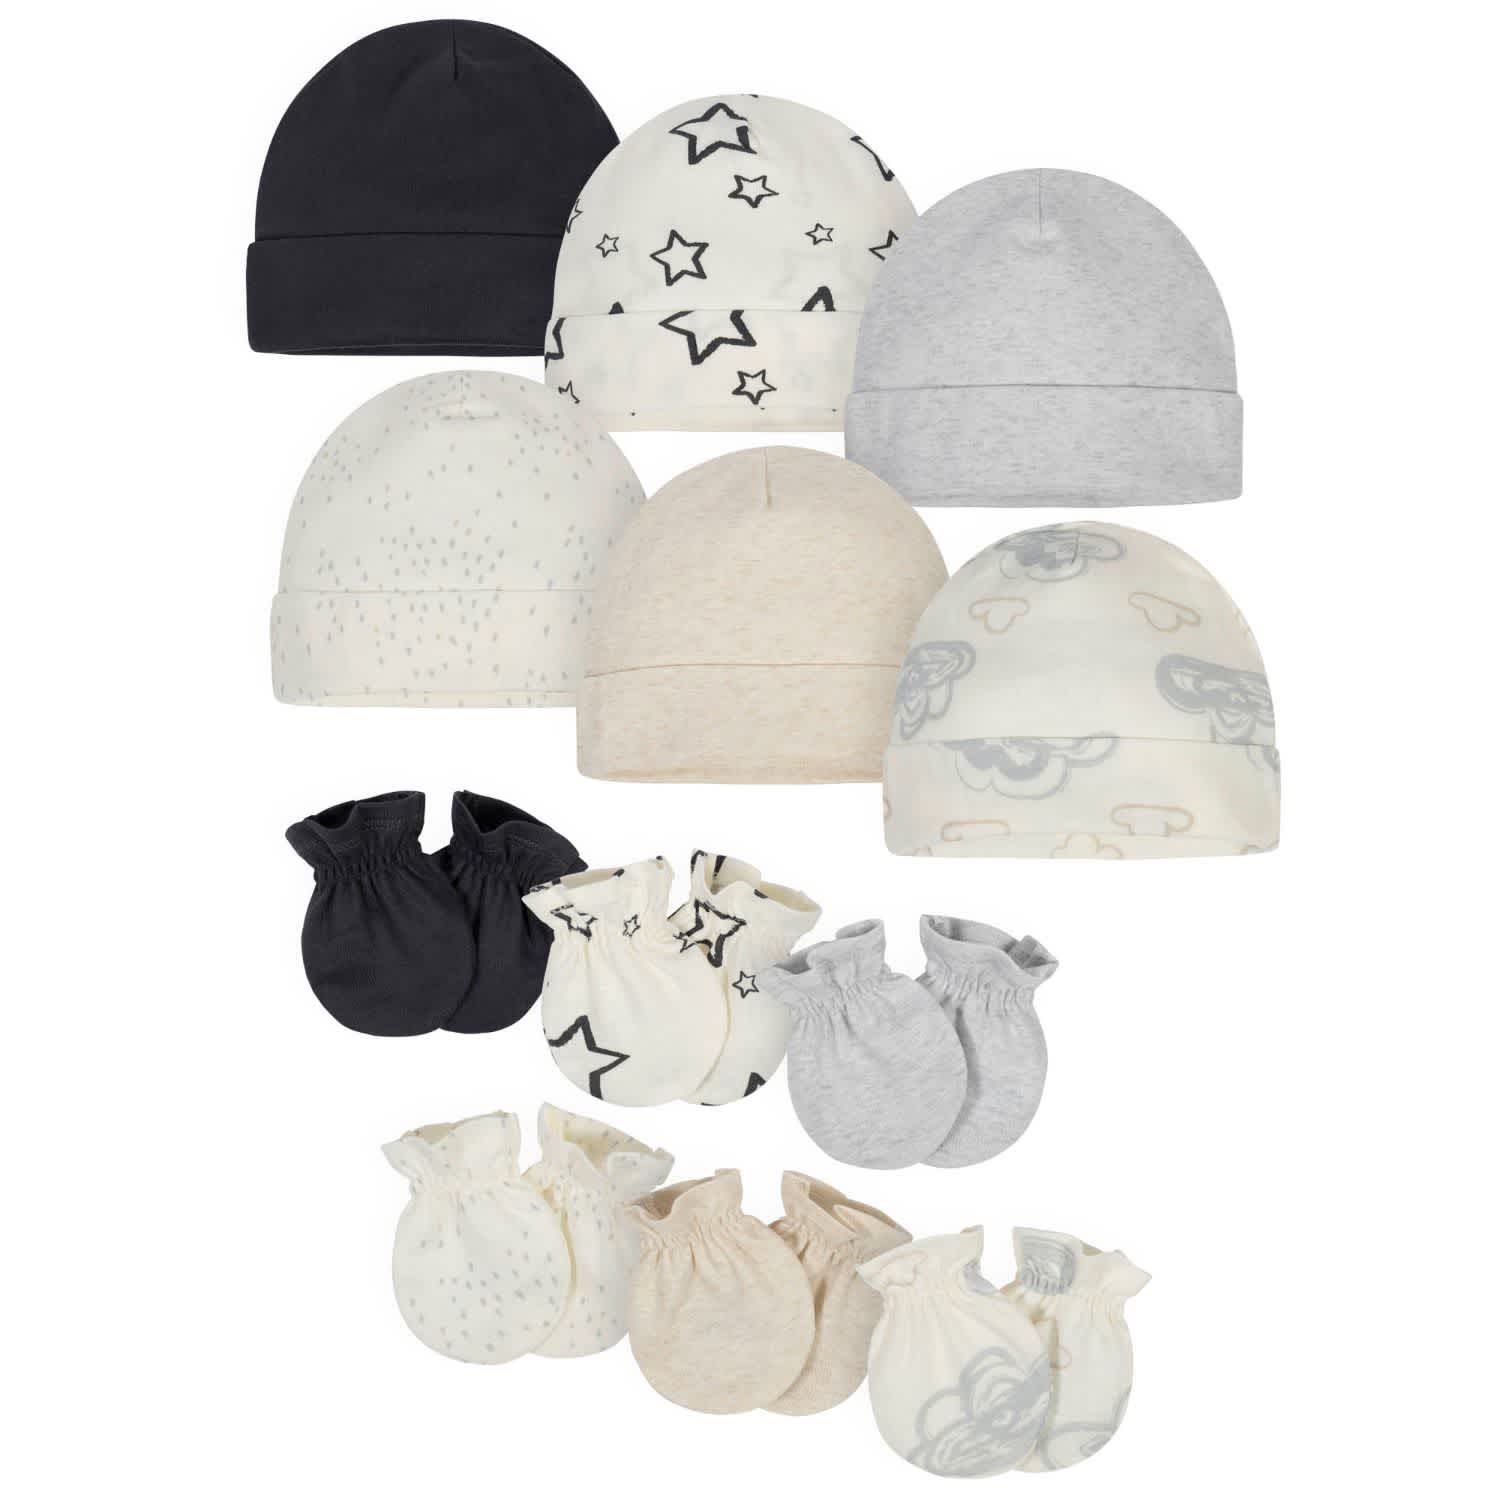 12-Pack Baby Neutral Words Cap and Mitten Set